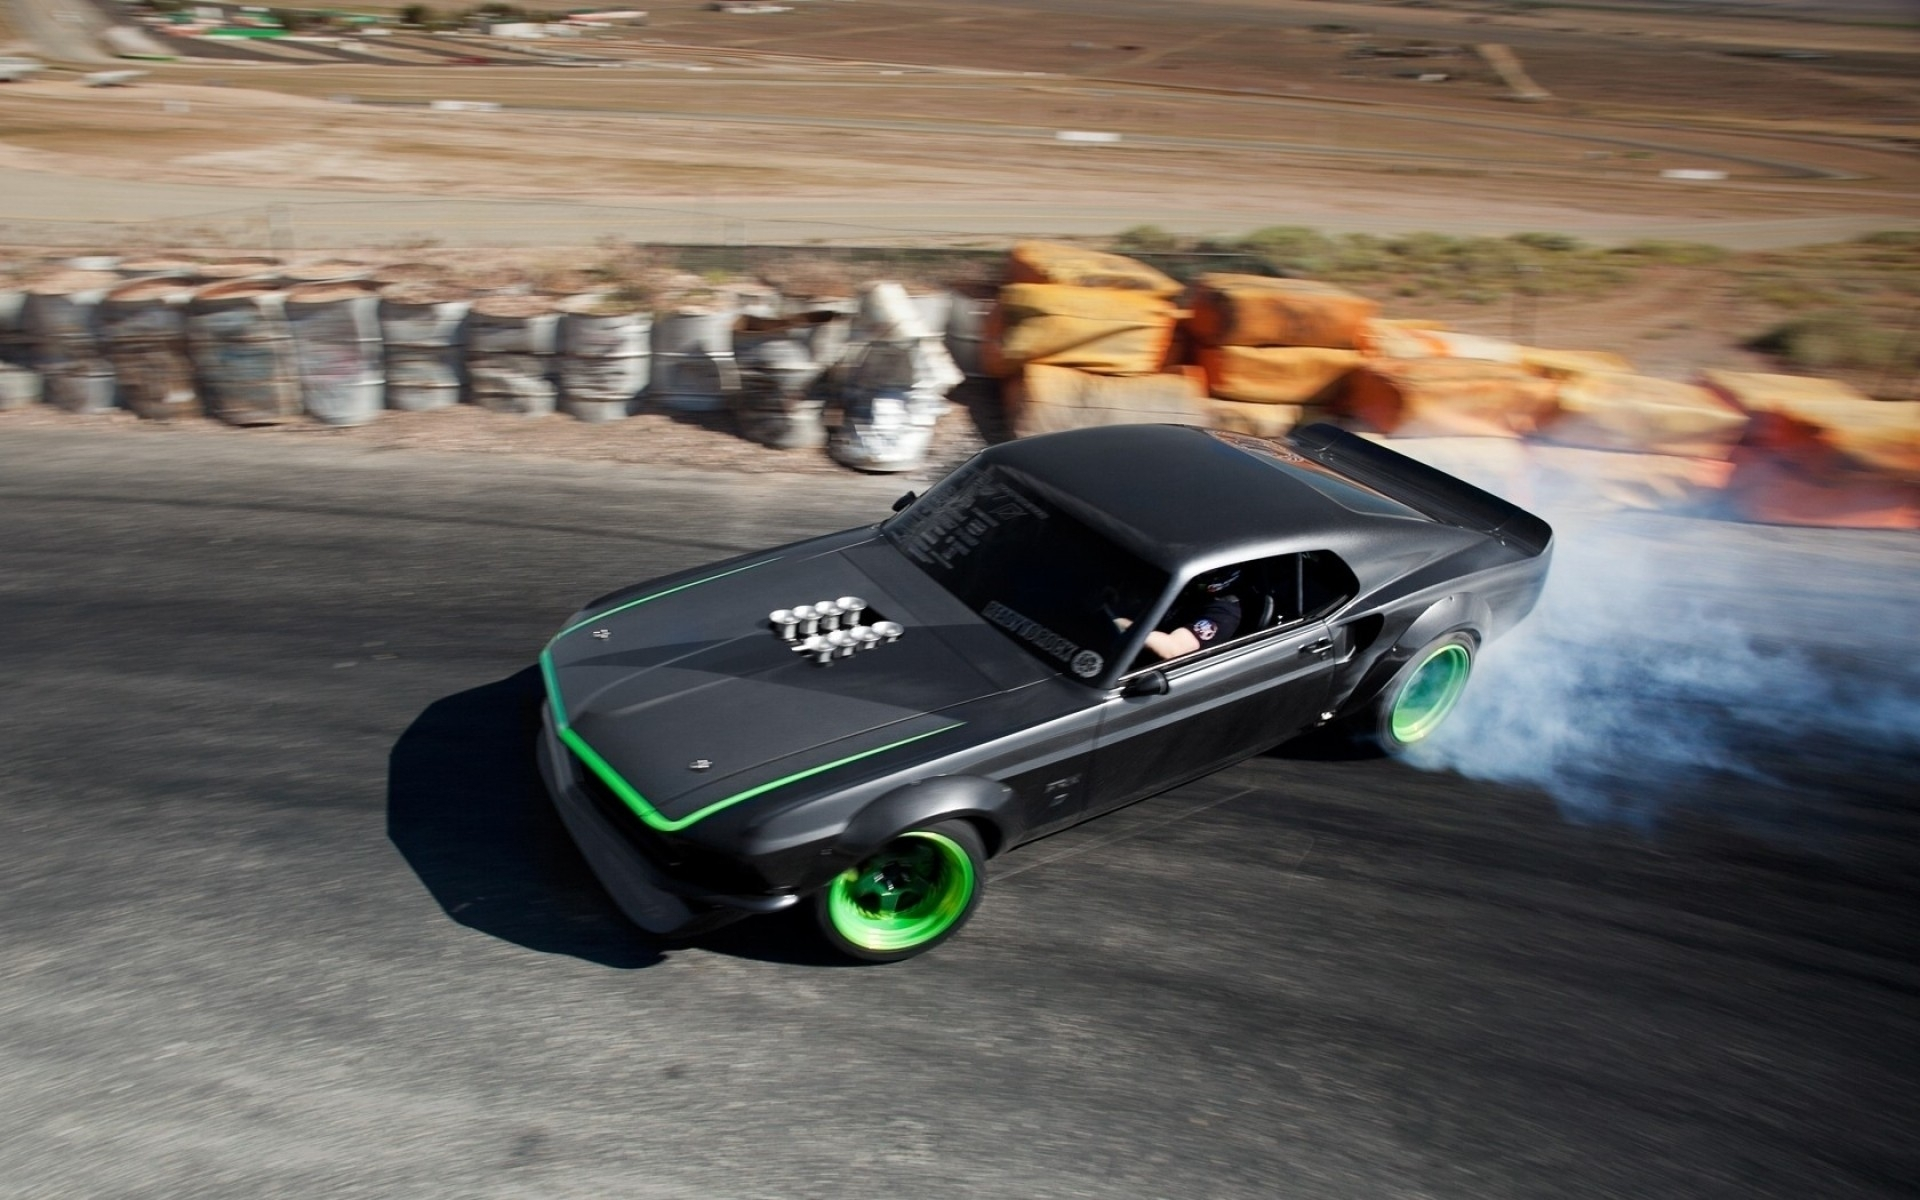 Ford Mustang Hot Rod Classic Muscle Cars Racing Drift Tuning Race